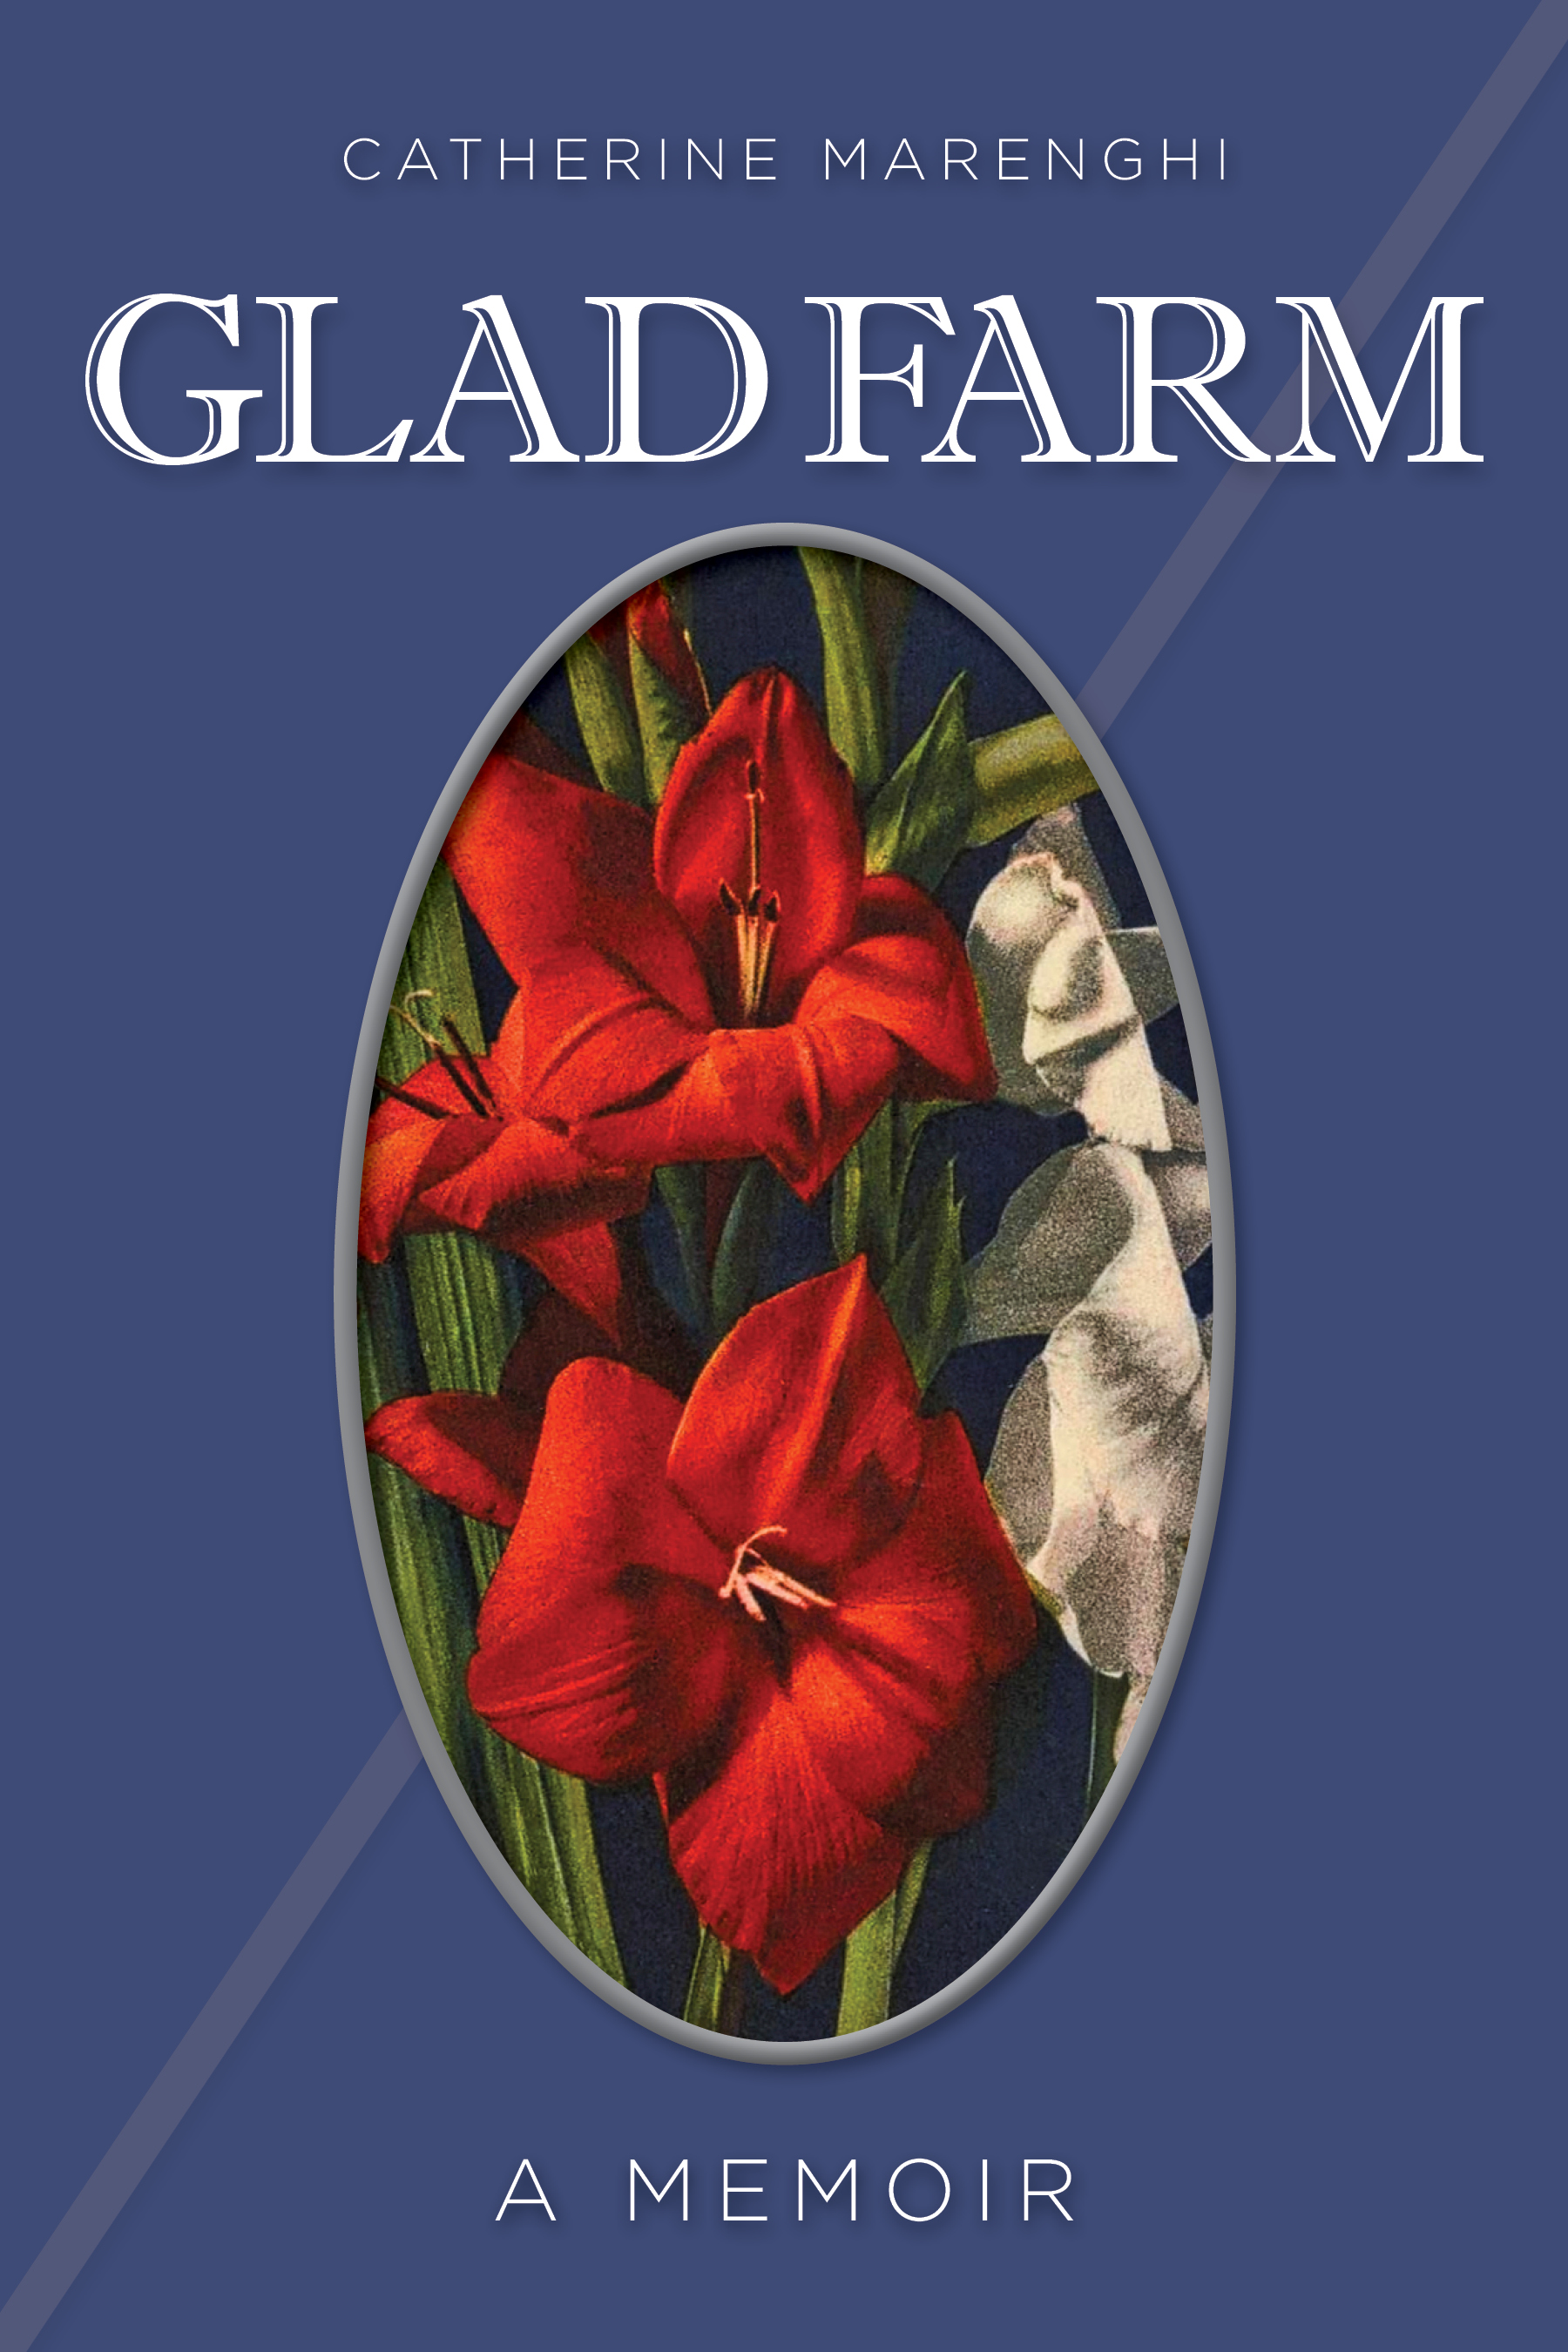 GLAD FARM: revised cover concept #1